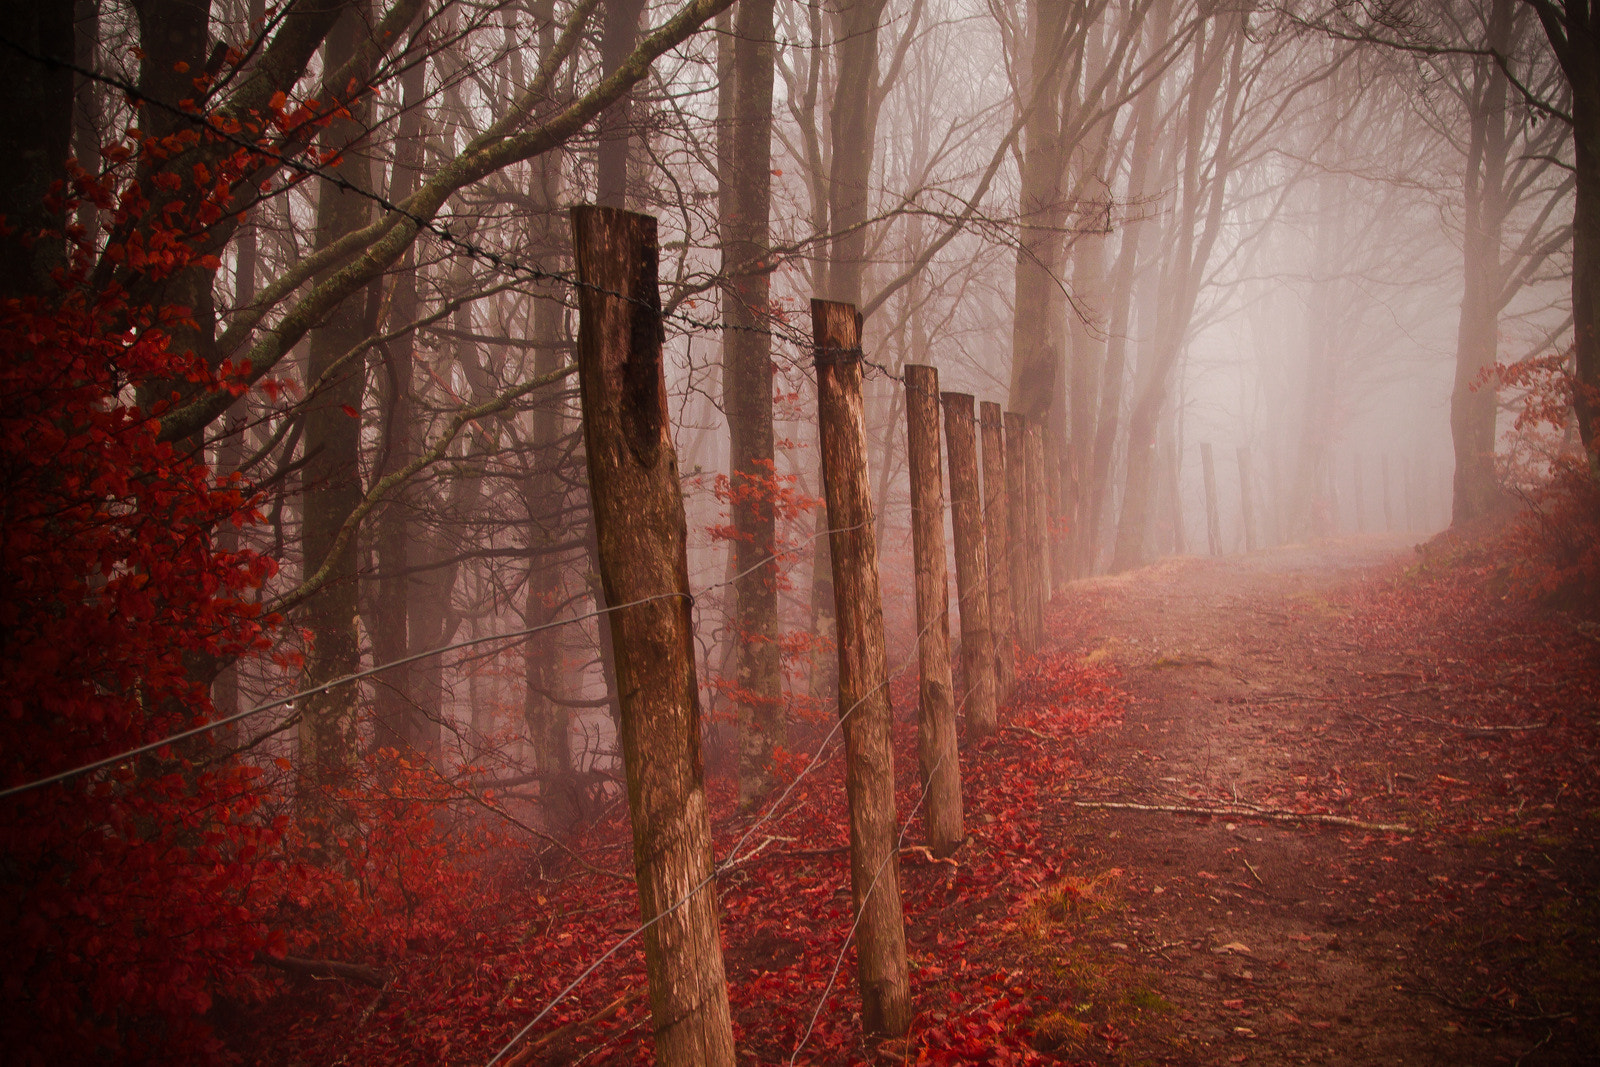 Photograph The path with no name by David Butali on 500px